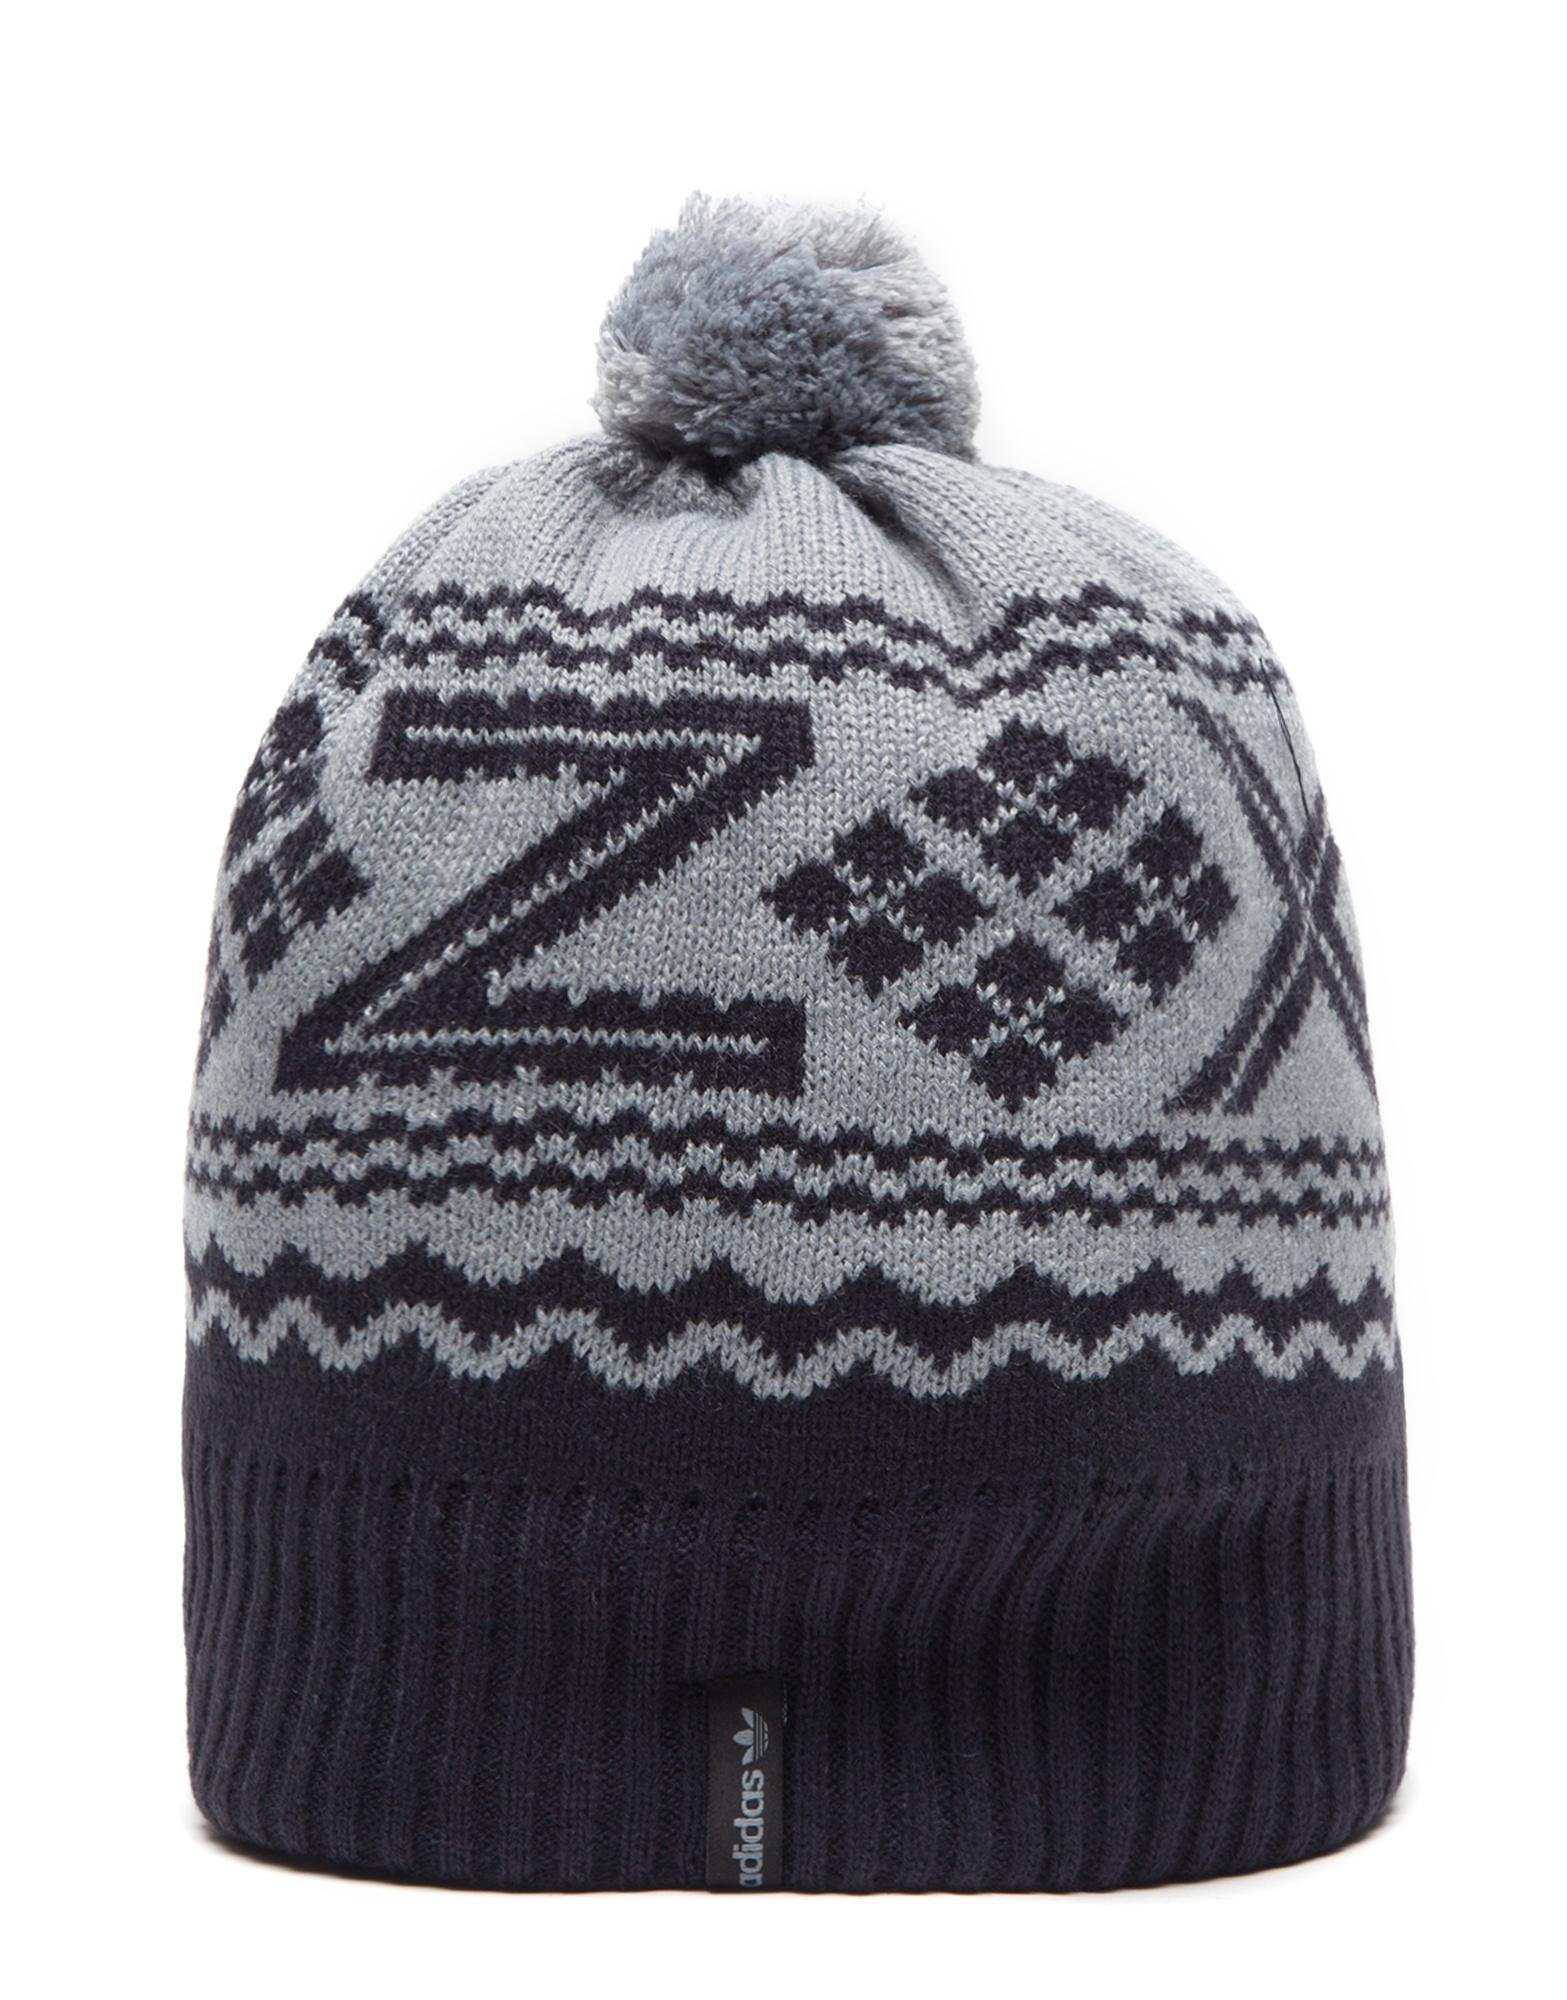 9b2bd25edf3 ... inexpensive adidas originals zx bobble hat in black lyst 62c64 99477